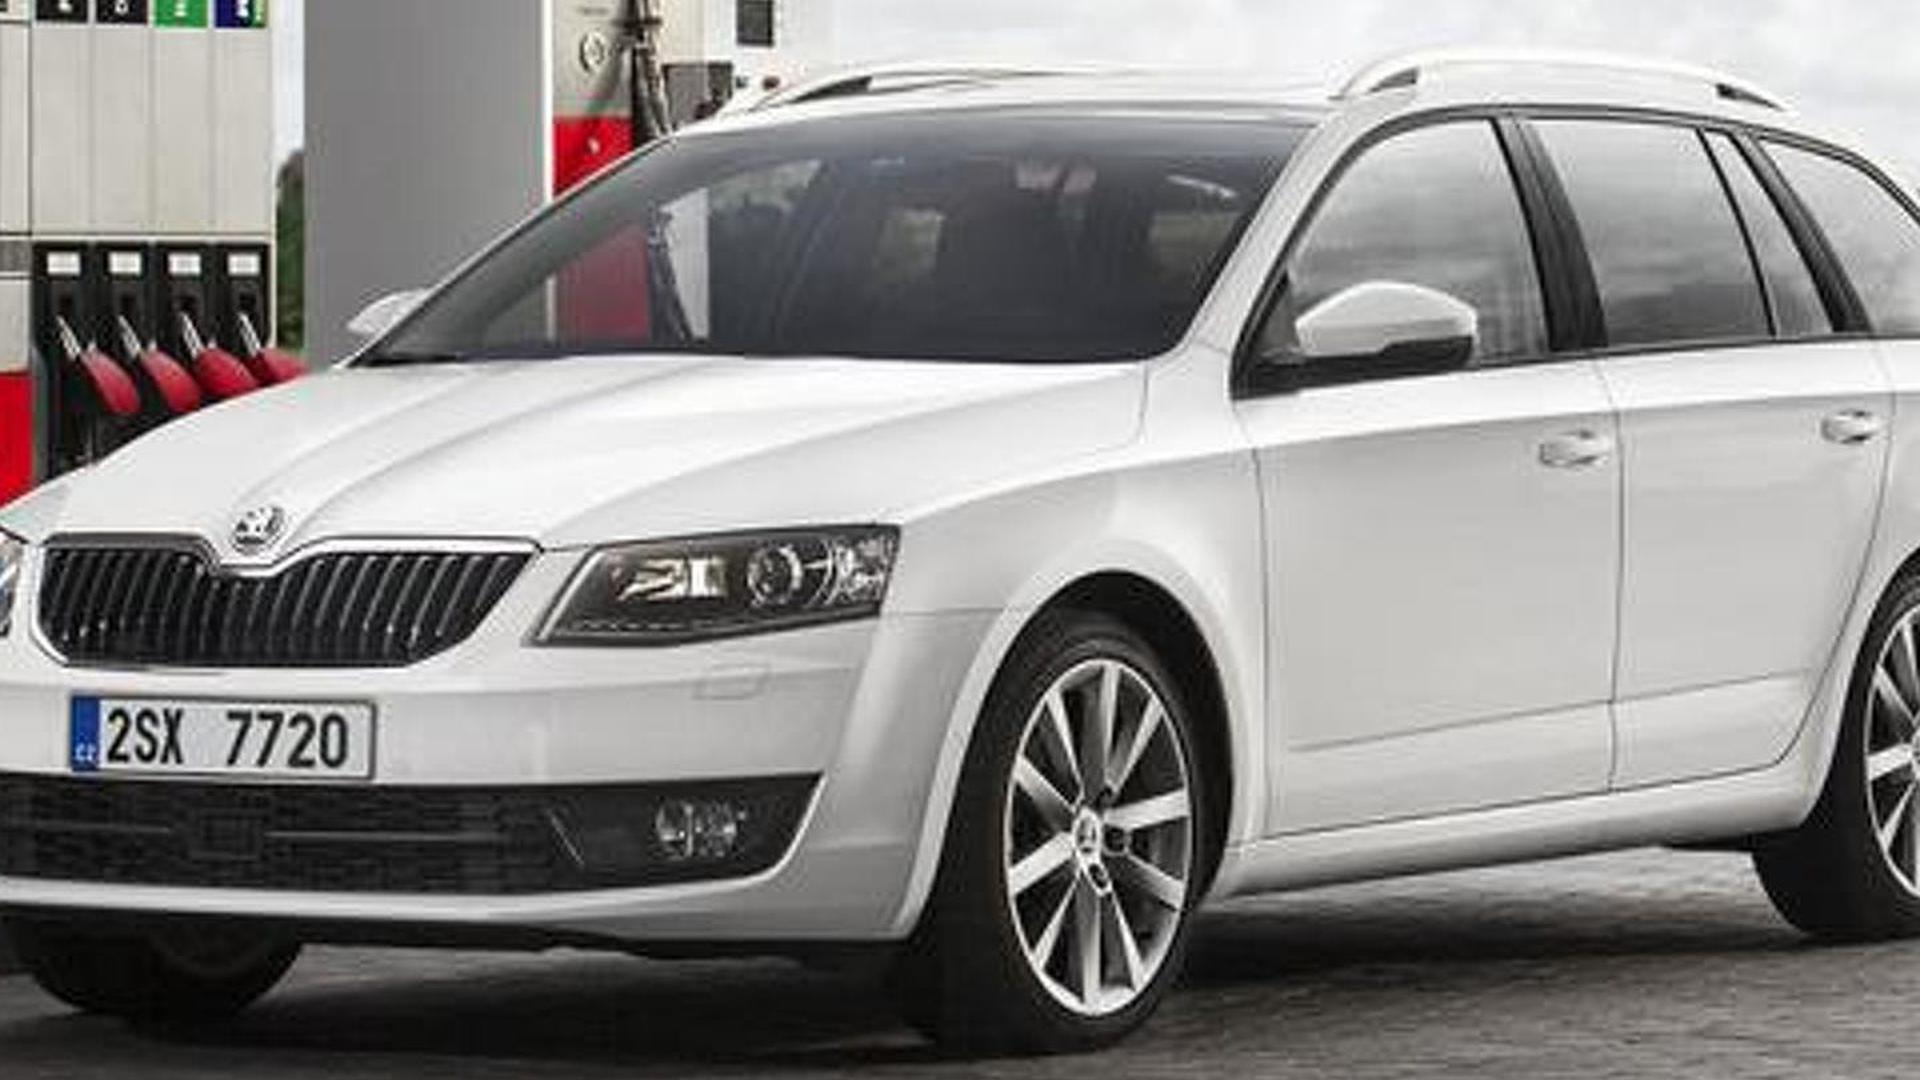 Skoda Octavia G-TEC announced, runs on compressed natural gas